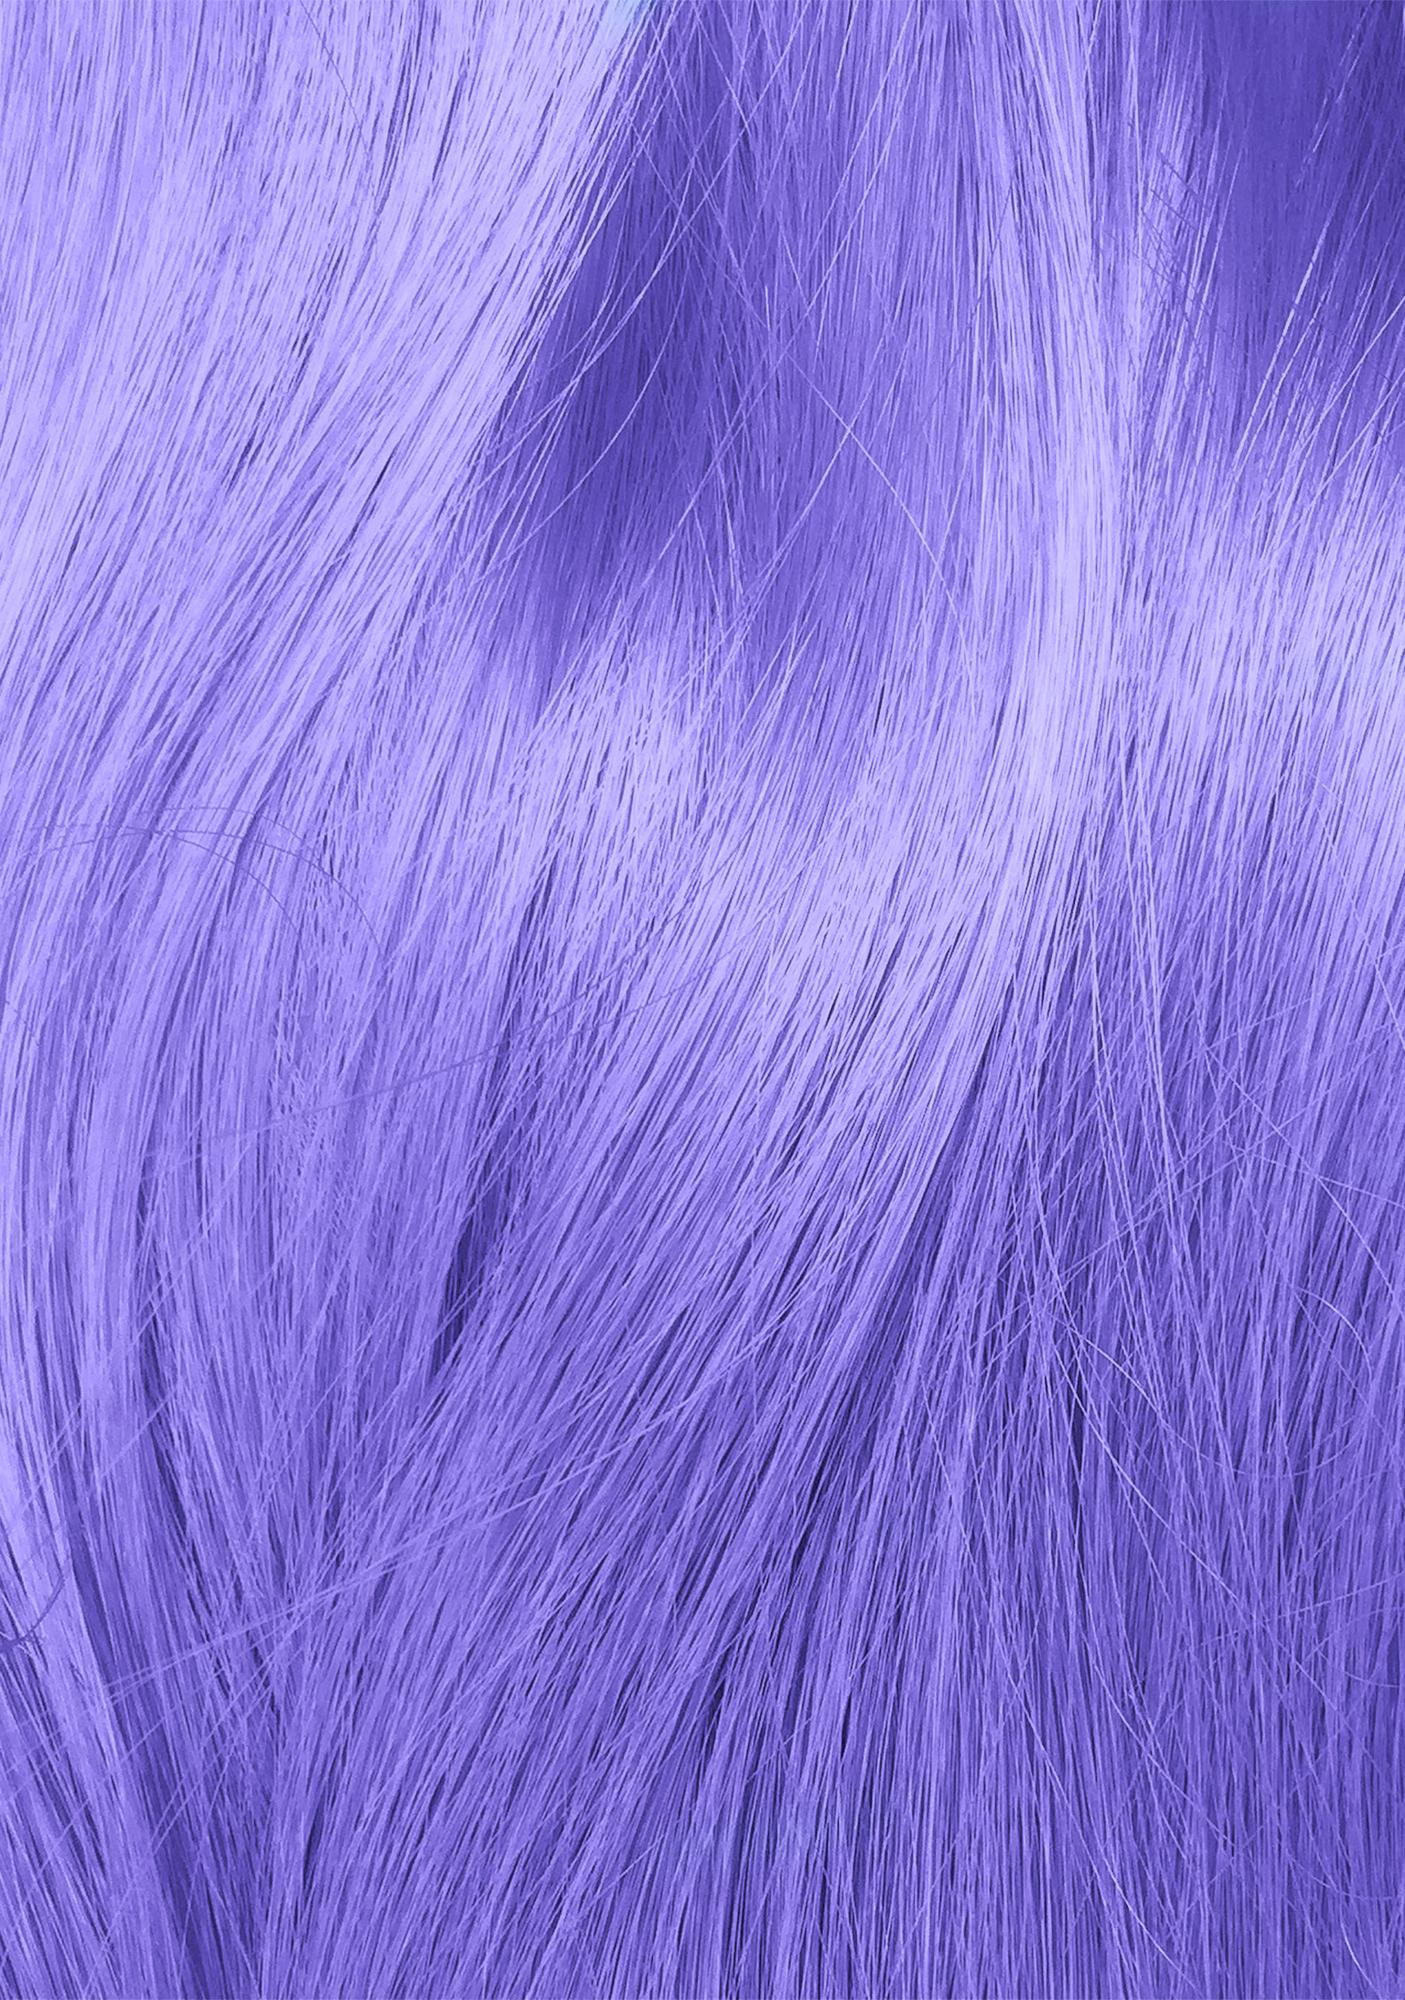 Lime Crime Cloud Unicorn Hair Dye